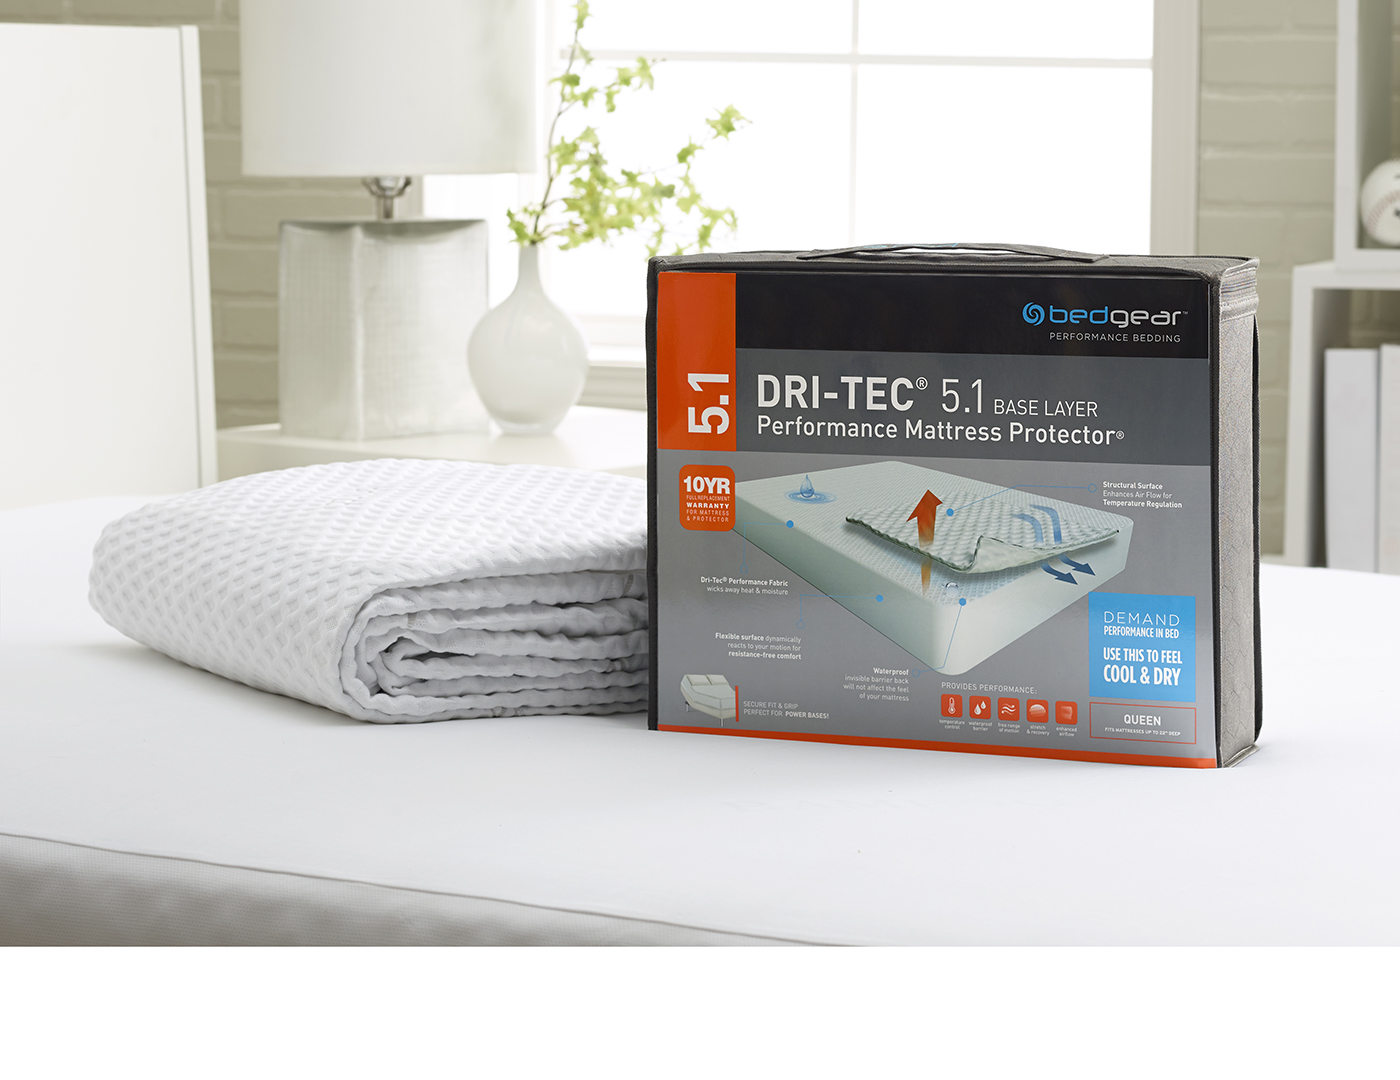 bedgear 5.1 Dri-Tec Moisture Wicking Twin Mattress Protector